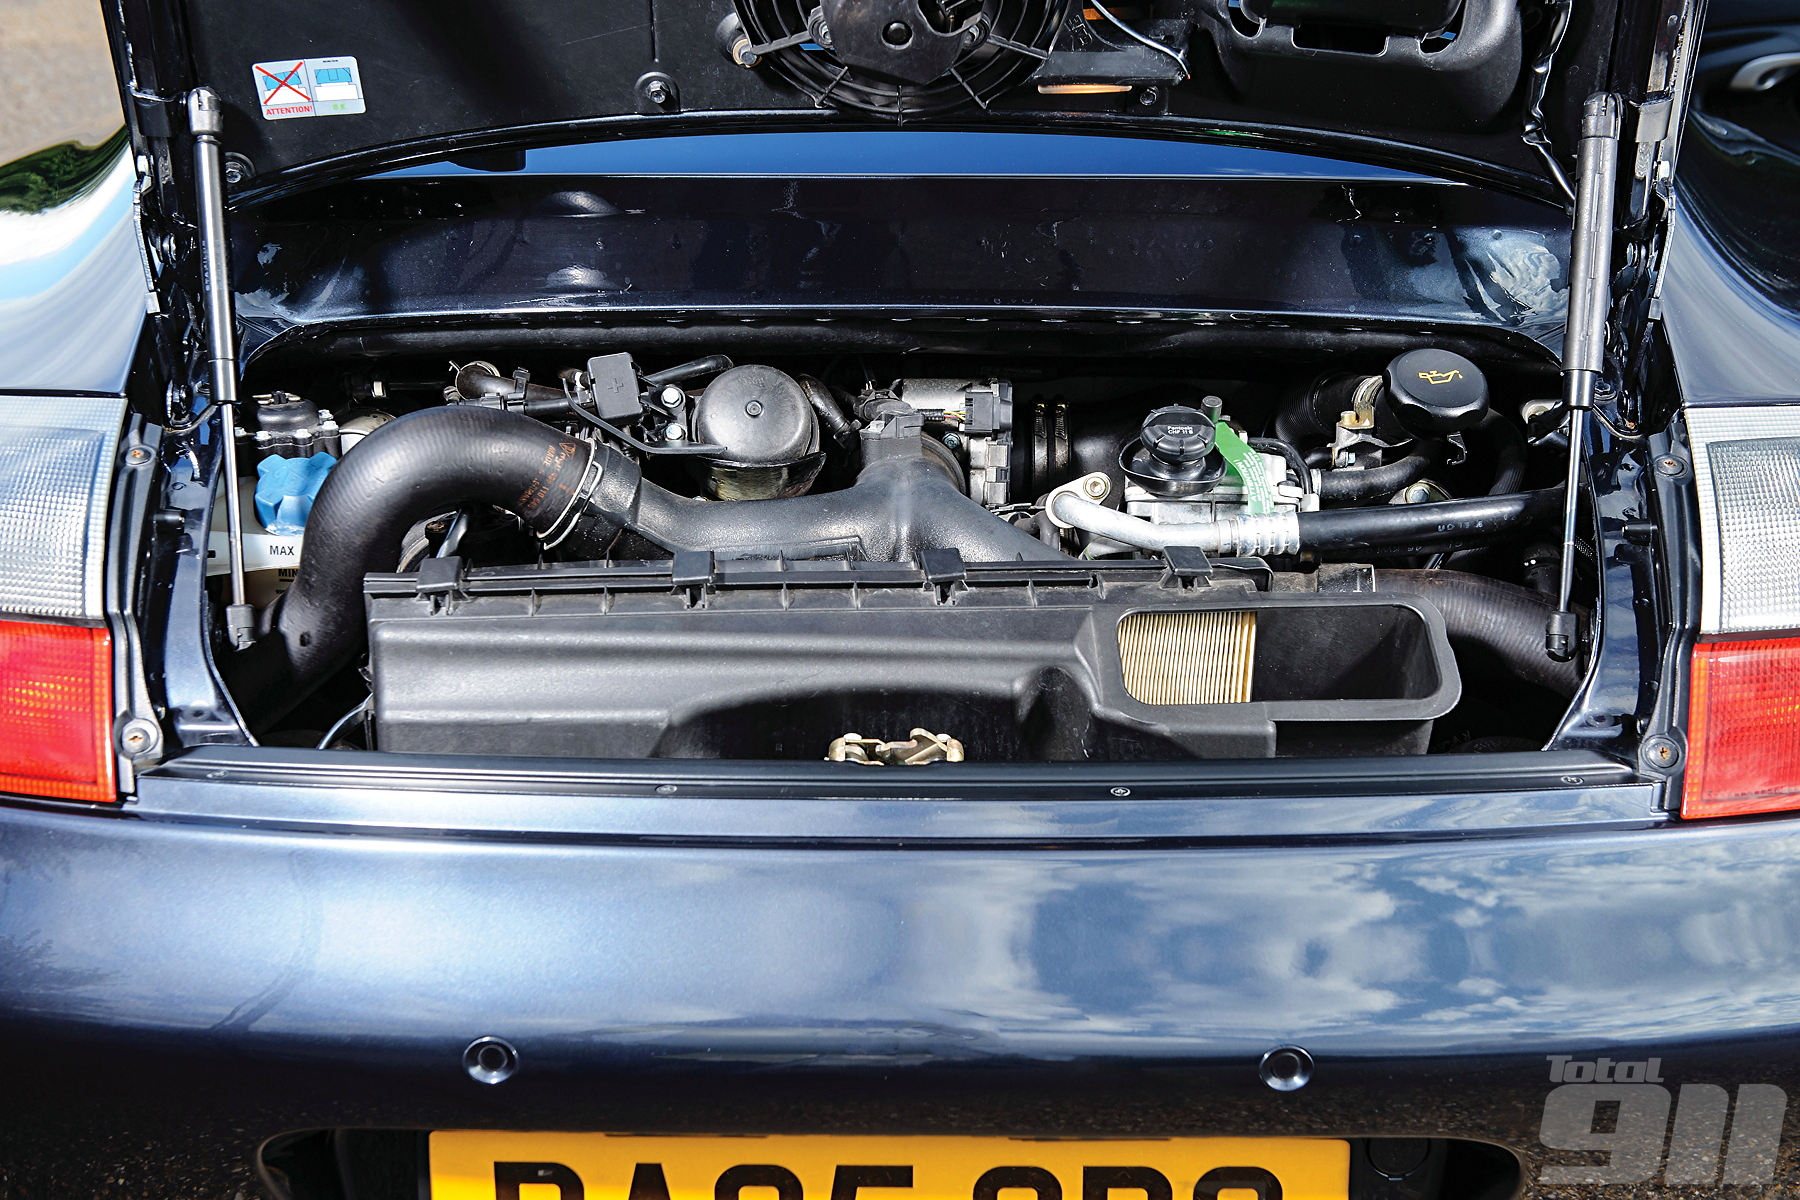 996 Turbo S engine